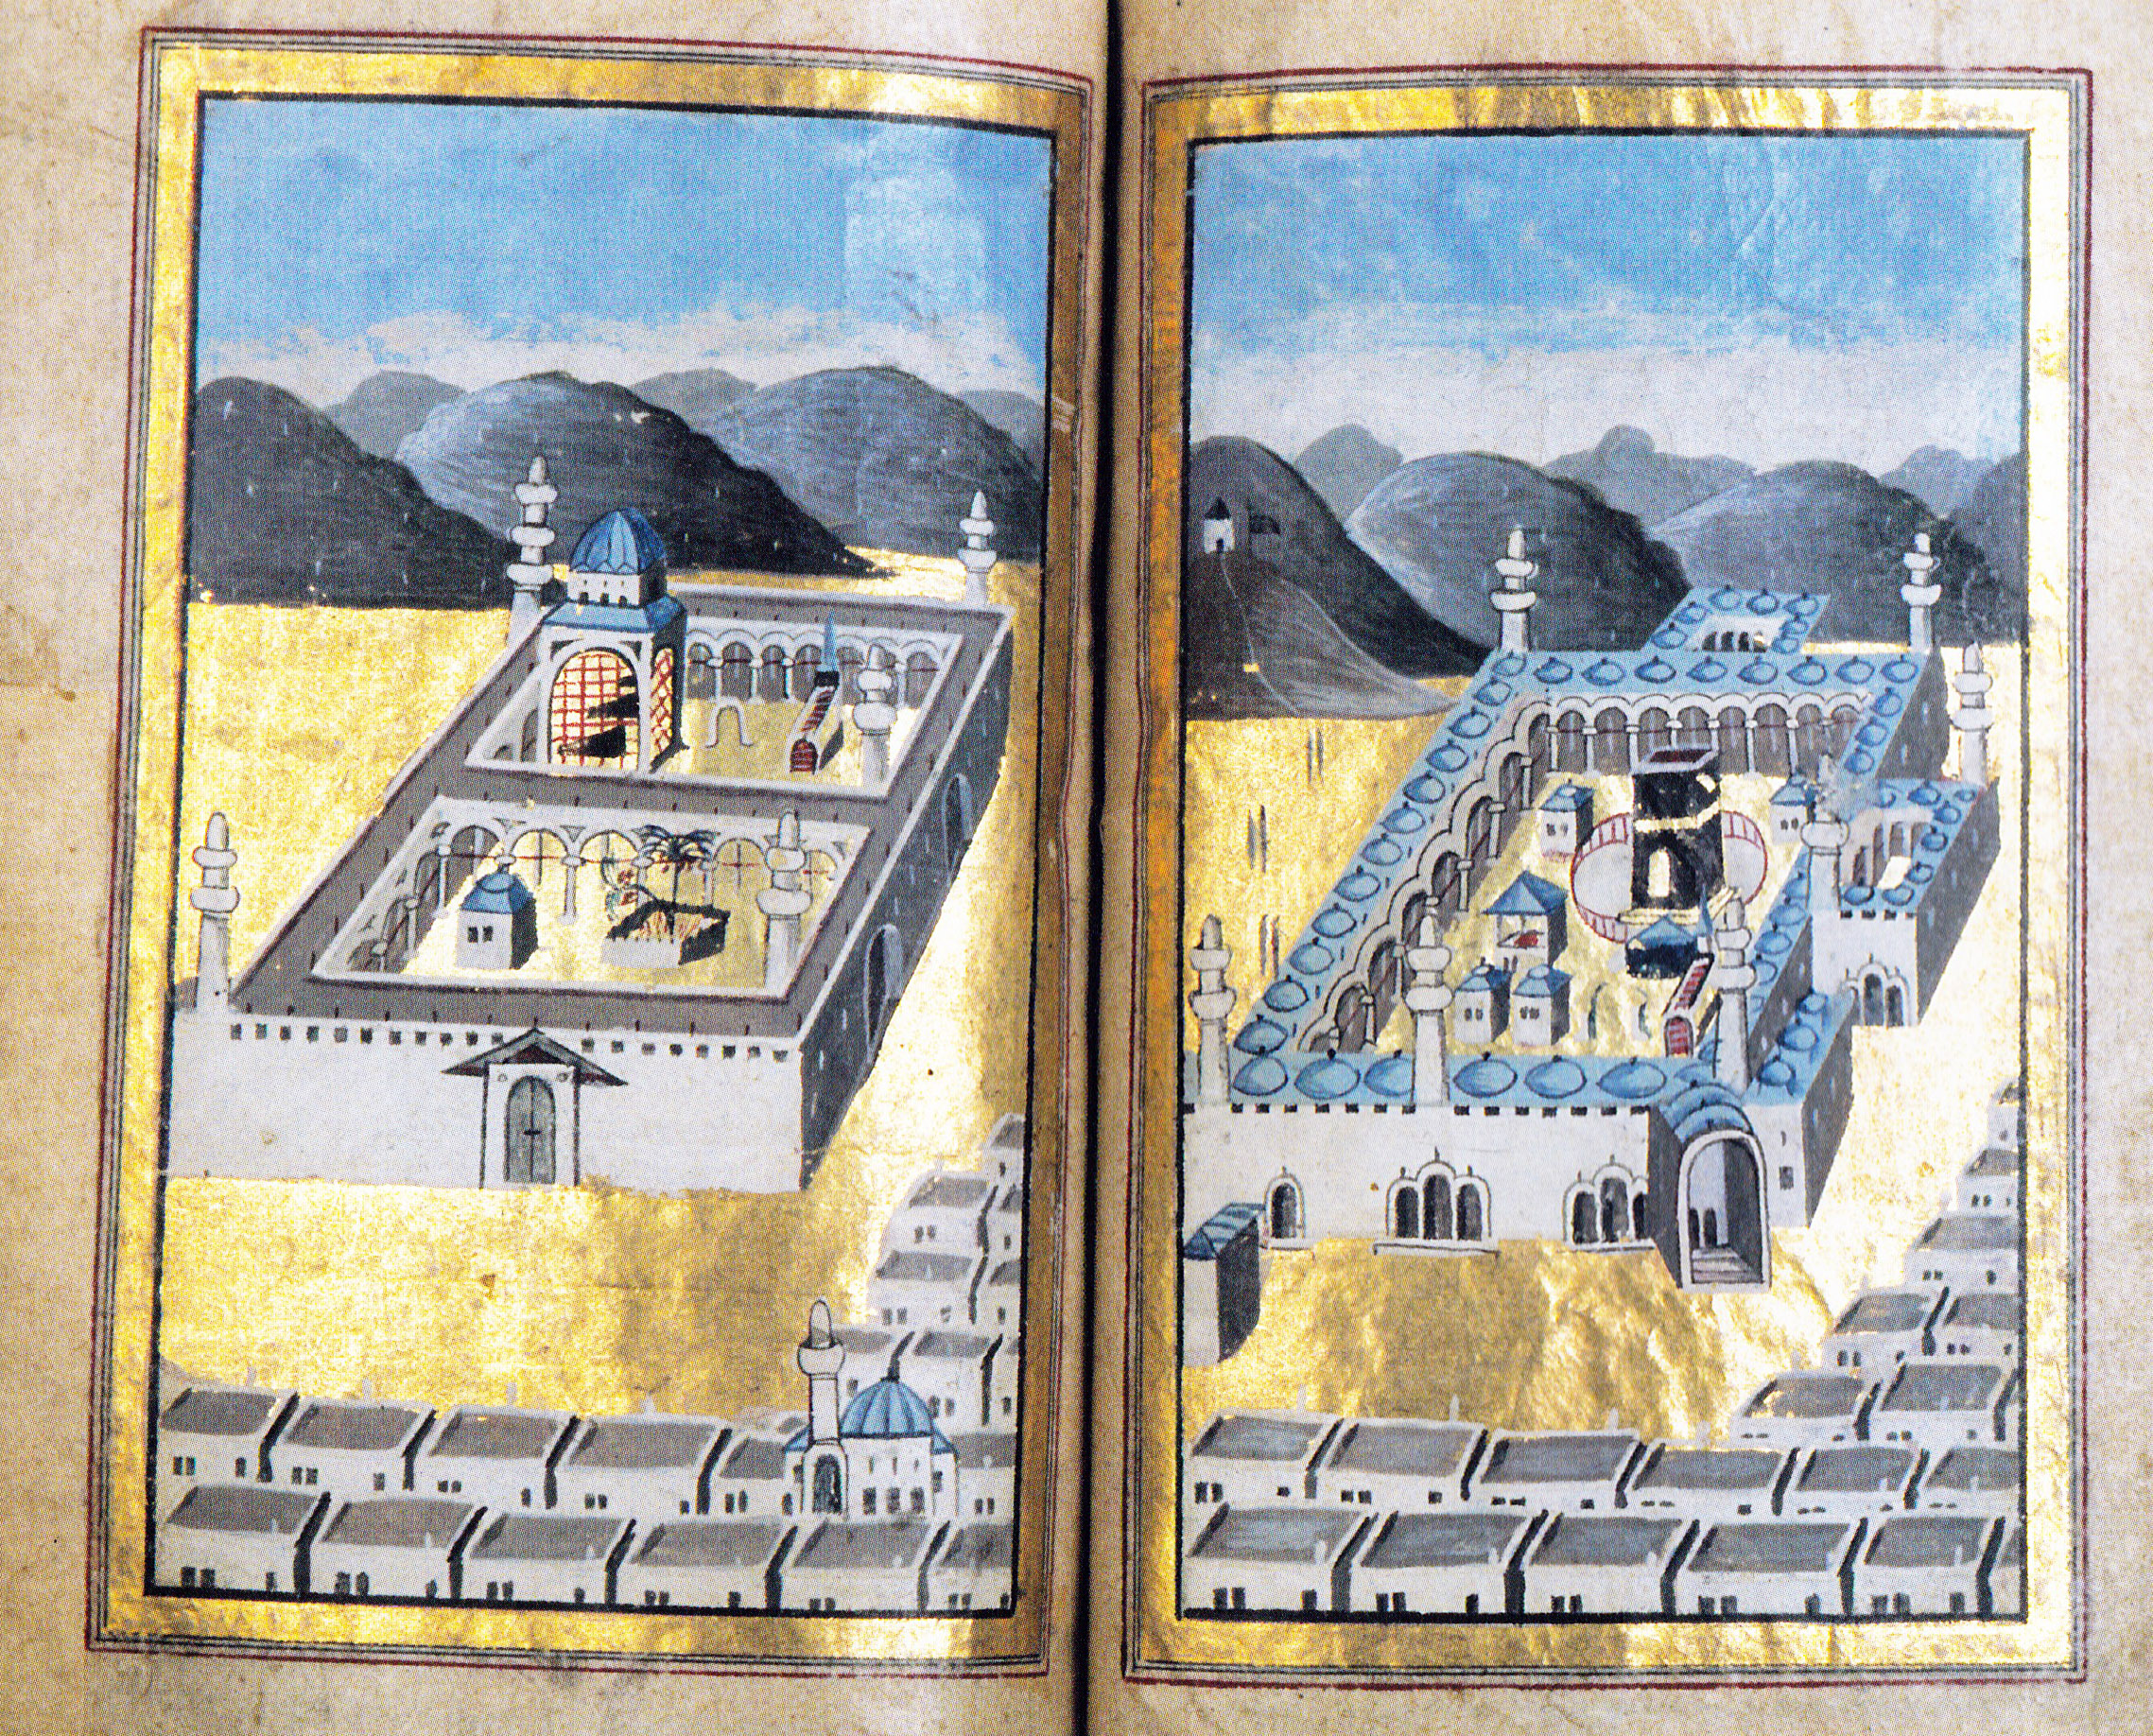 Ottoman representation of Holly mosques of Medina (in left) and Mekka (in right). XVIII century Stockholm, Sweden.